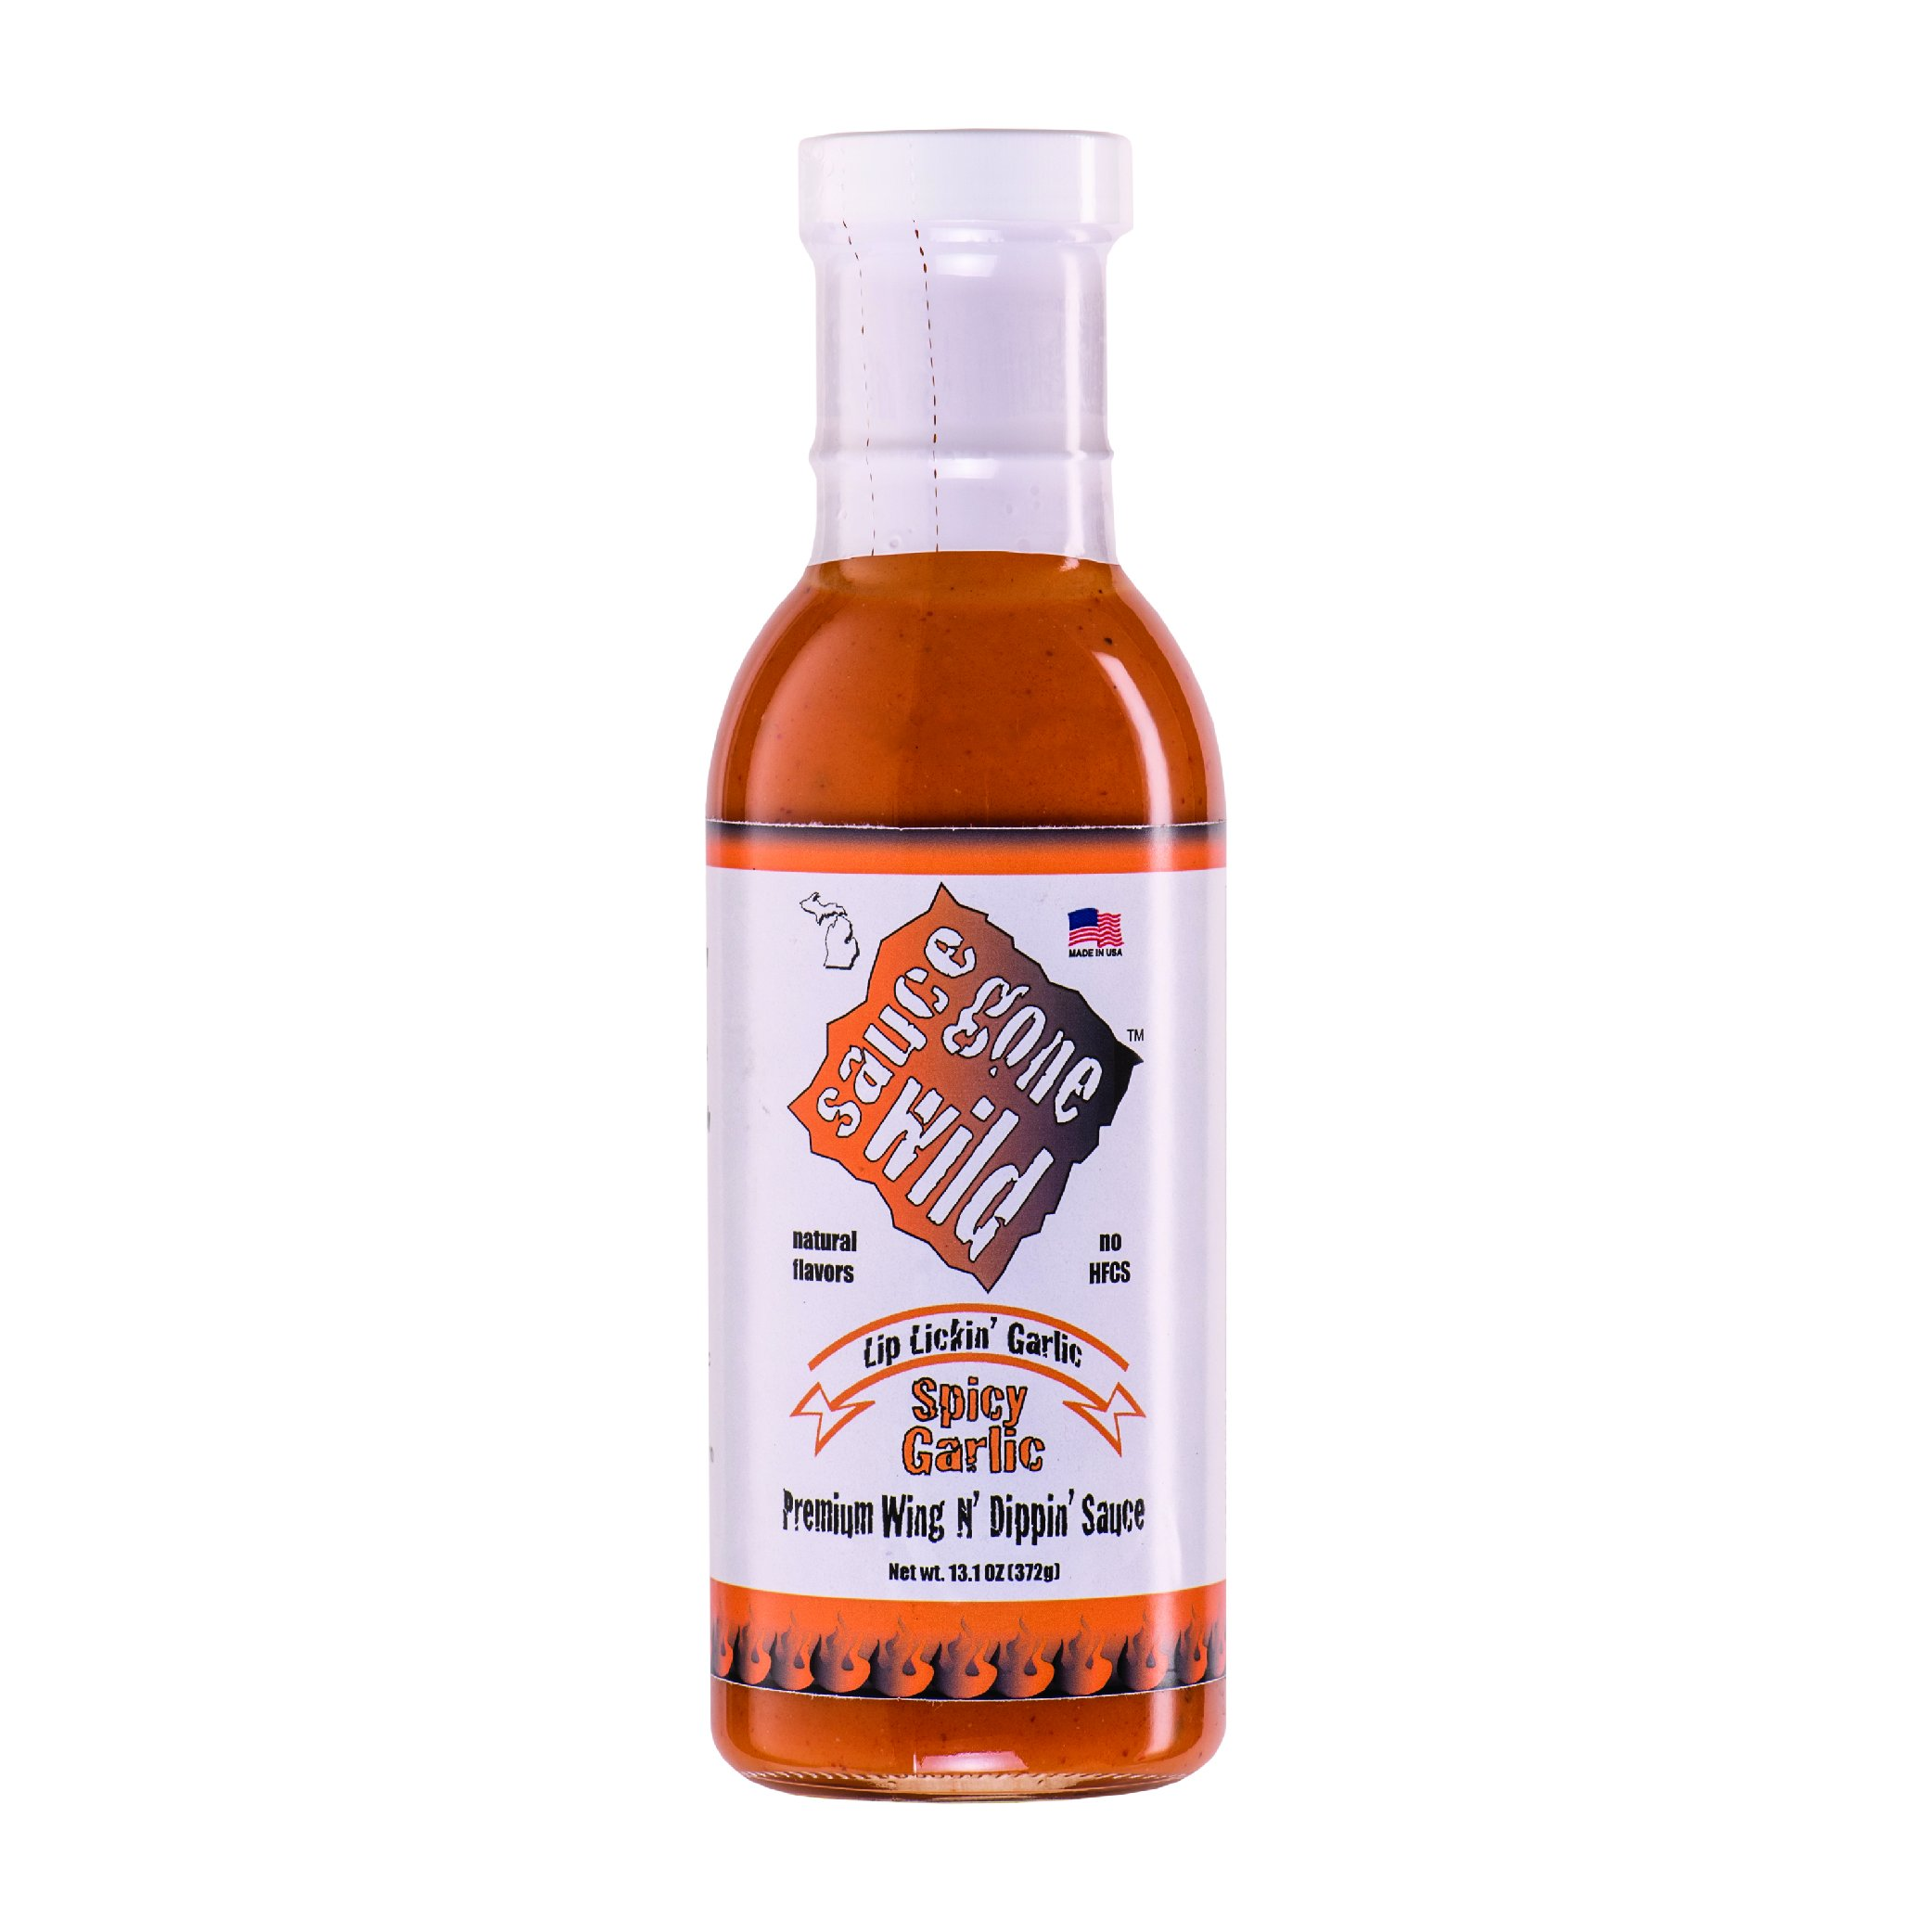 Sauce Gone Wild Wing Sauce - Spicy Garlic Flavor -13.1oz - Hot Marinade for Grilling & Cooking Chicken - Made in USA - Tasty Restaurant Style Wings at Home